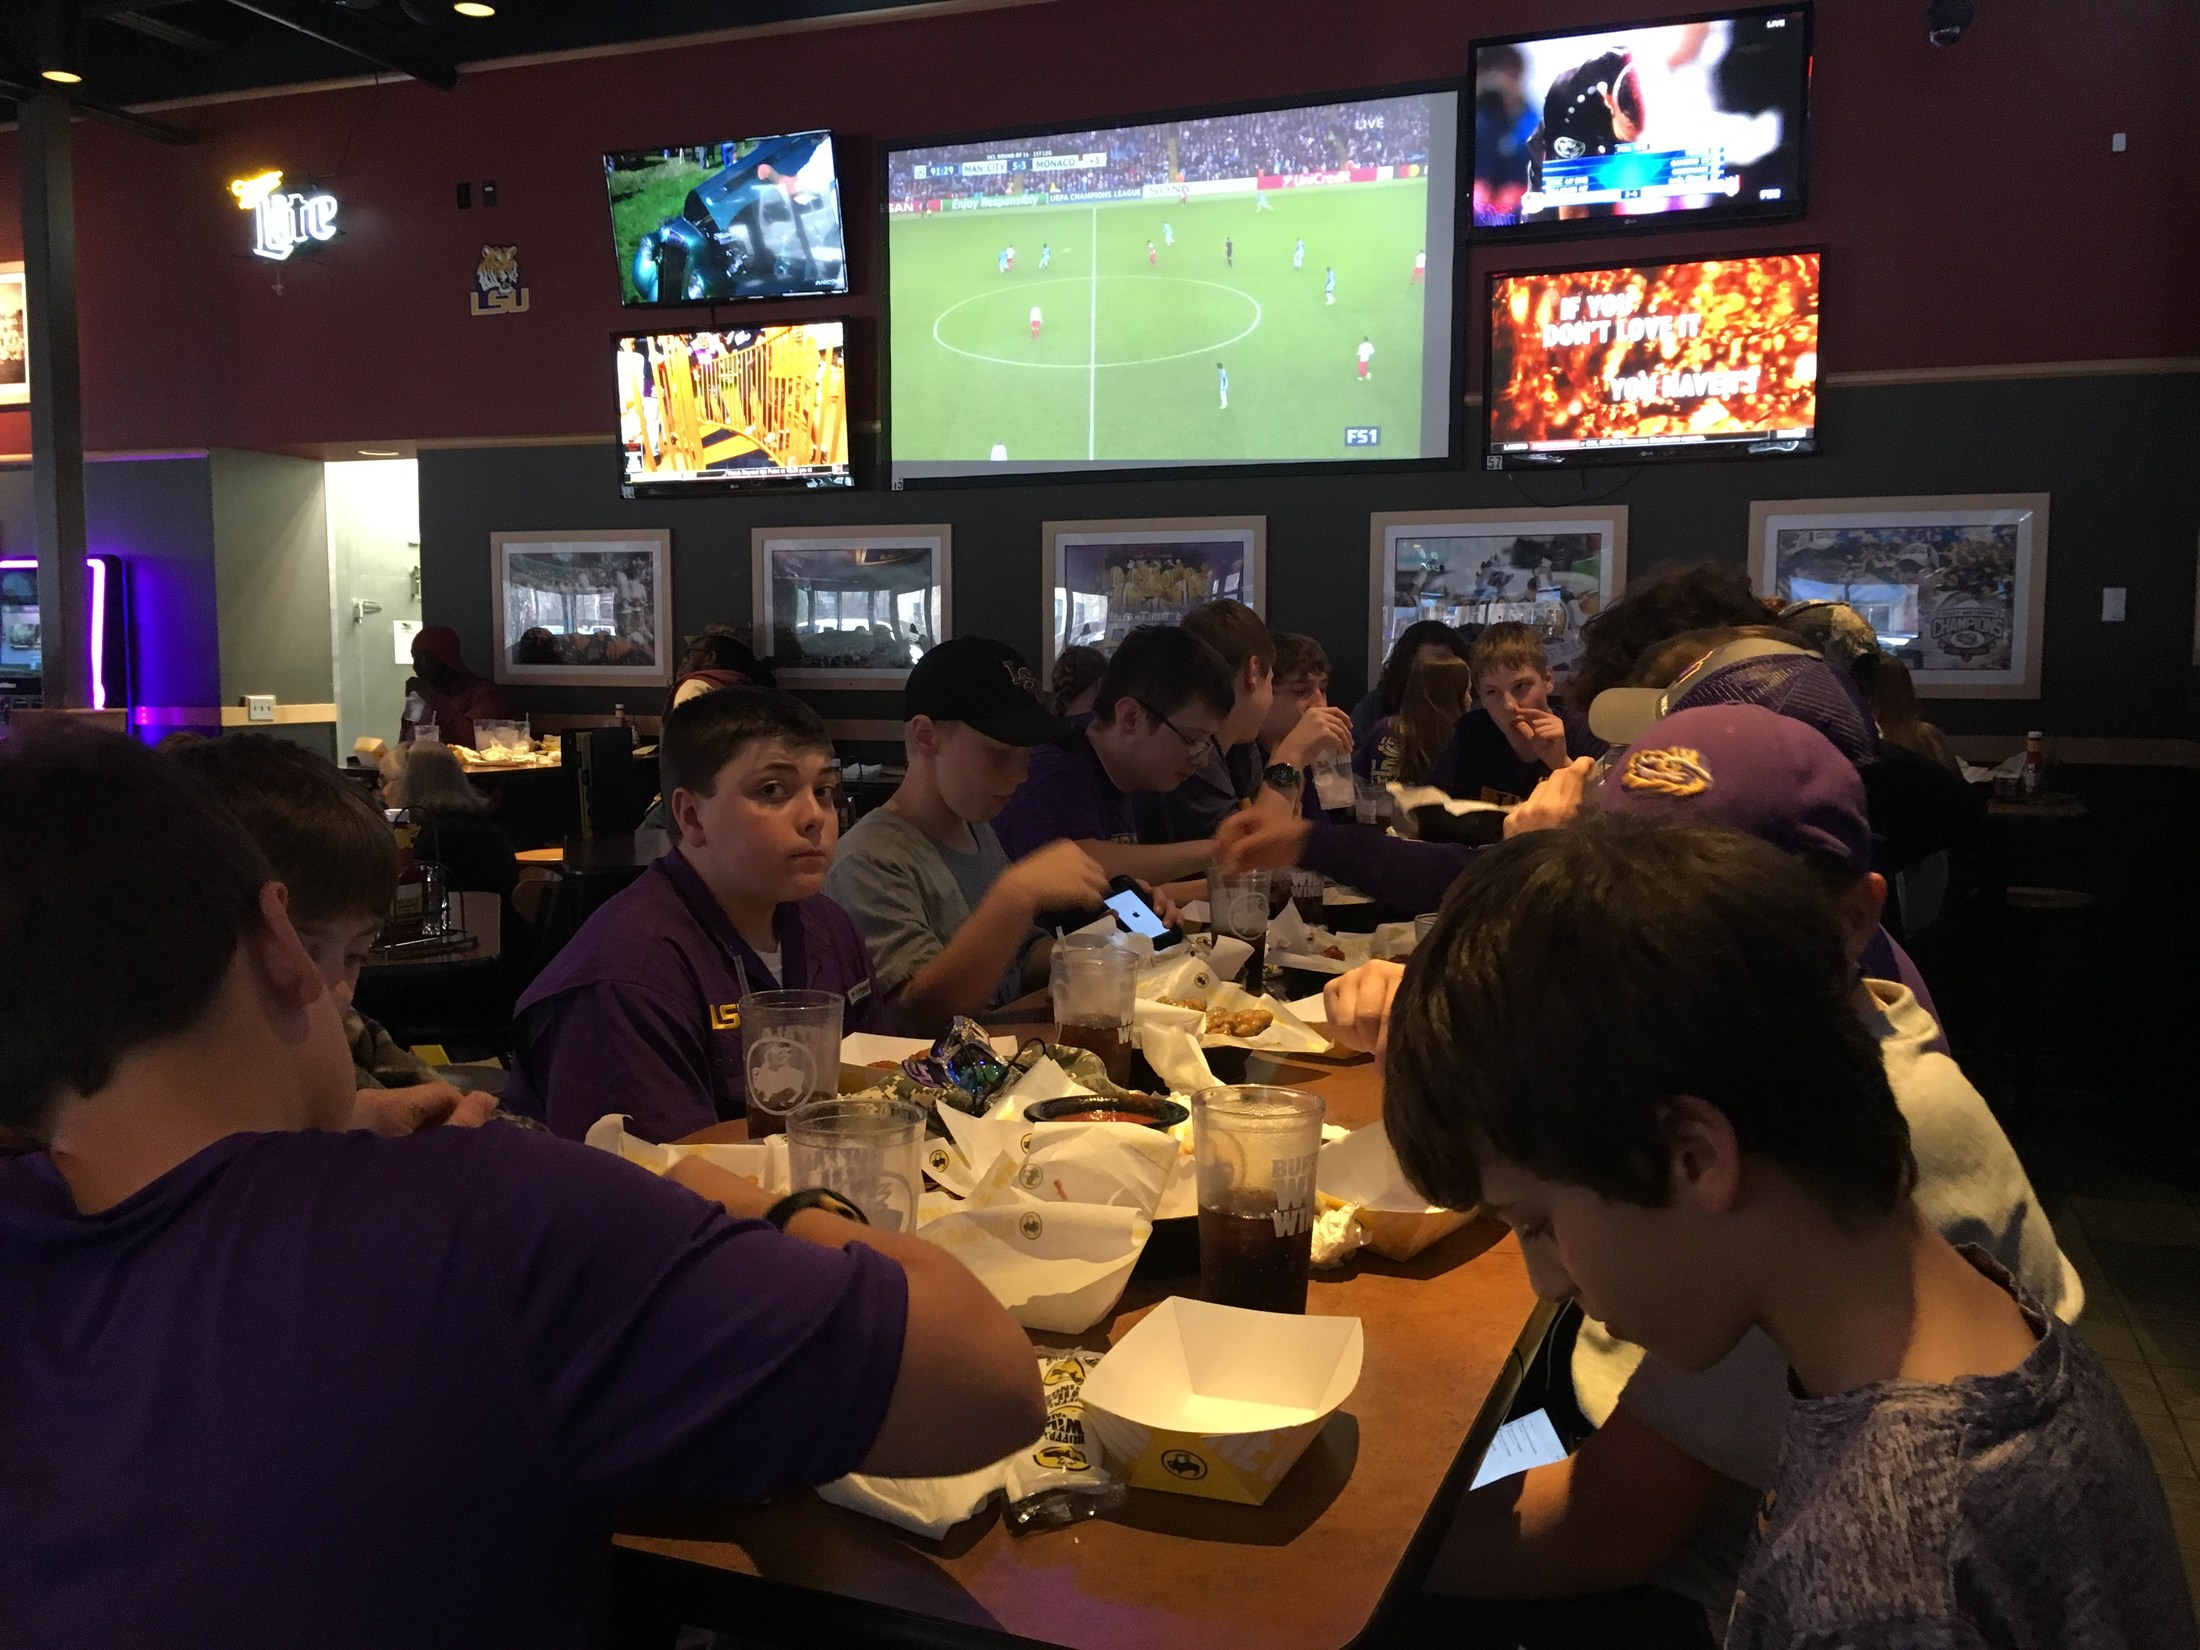 Boys eating at Buffalo Wild Wings